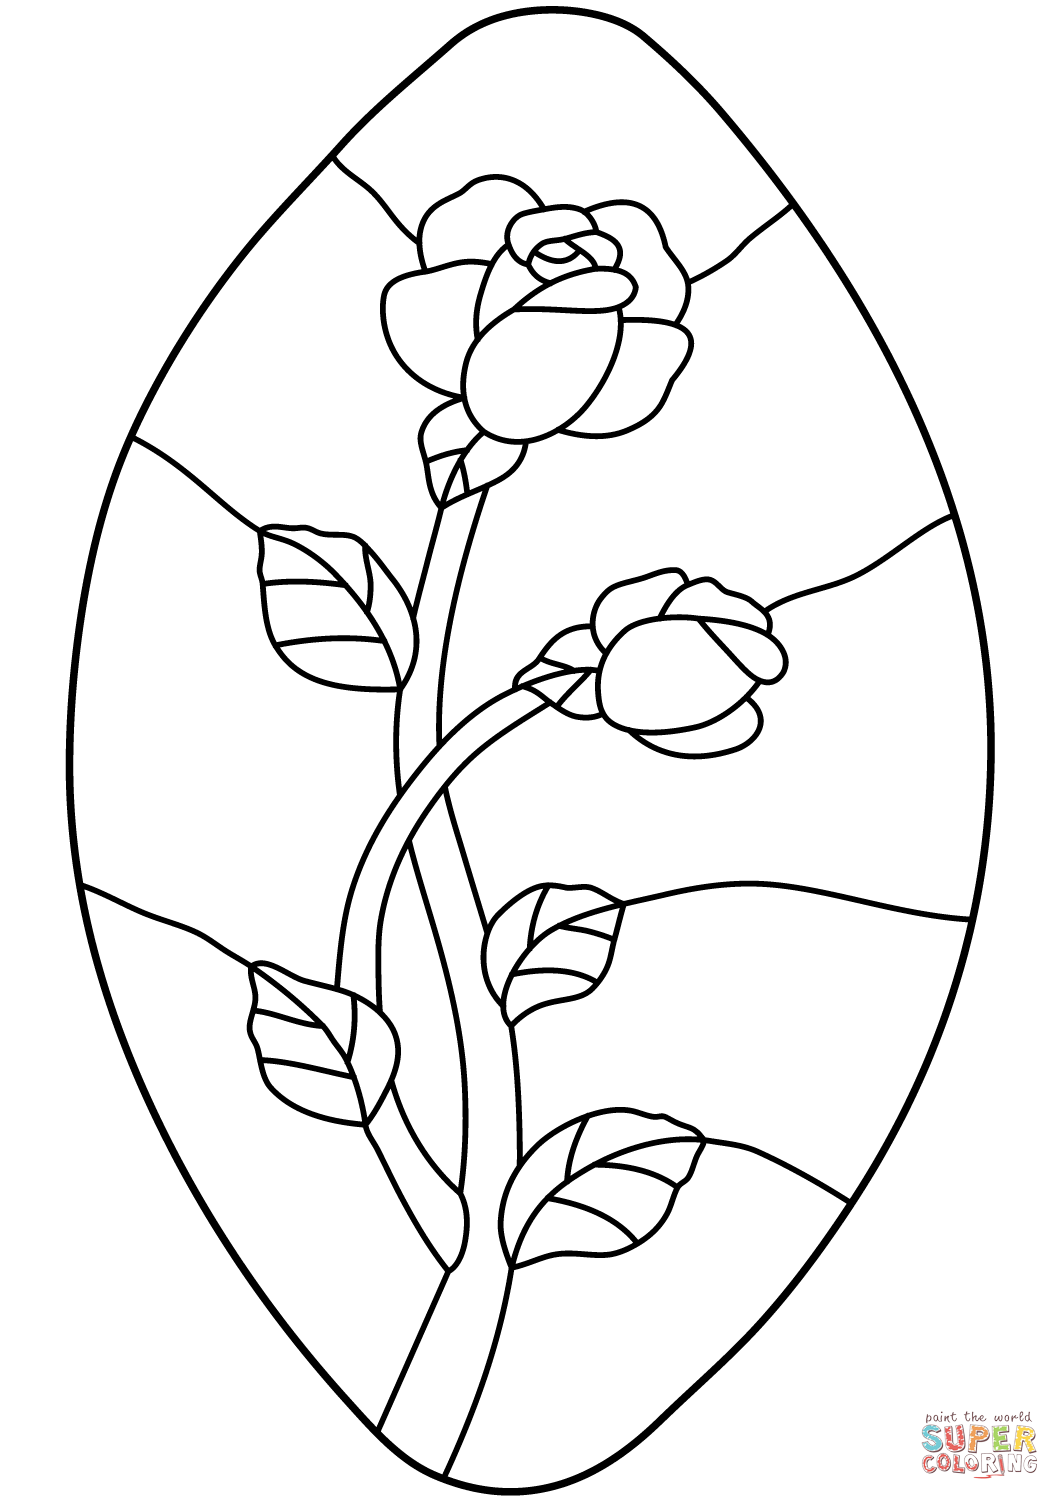 Free Printable Stained Glass Patterns Sketch Coloring Page